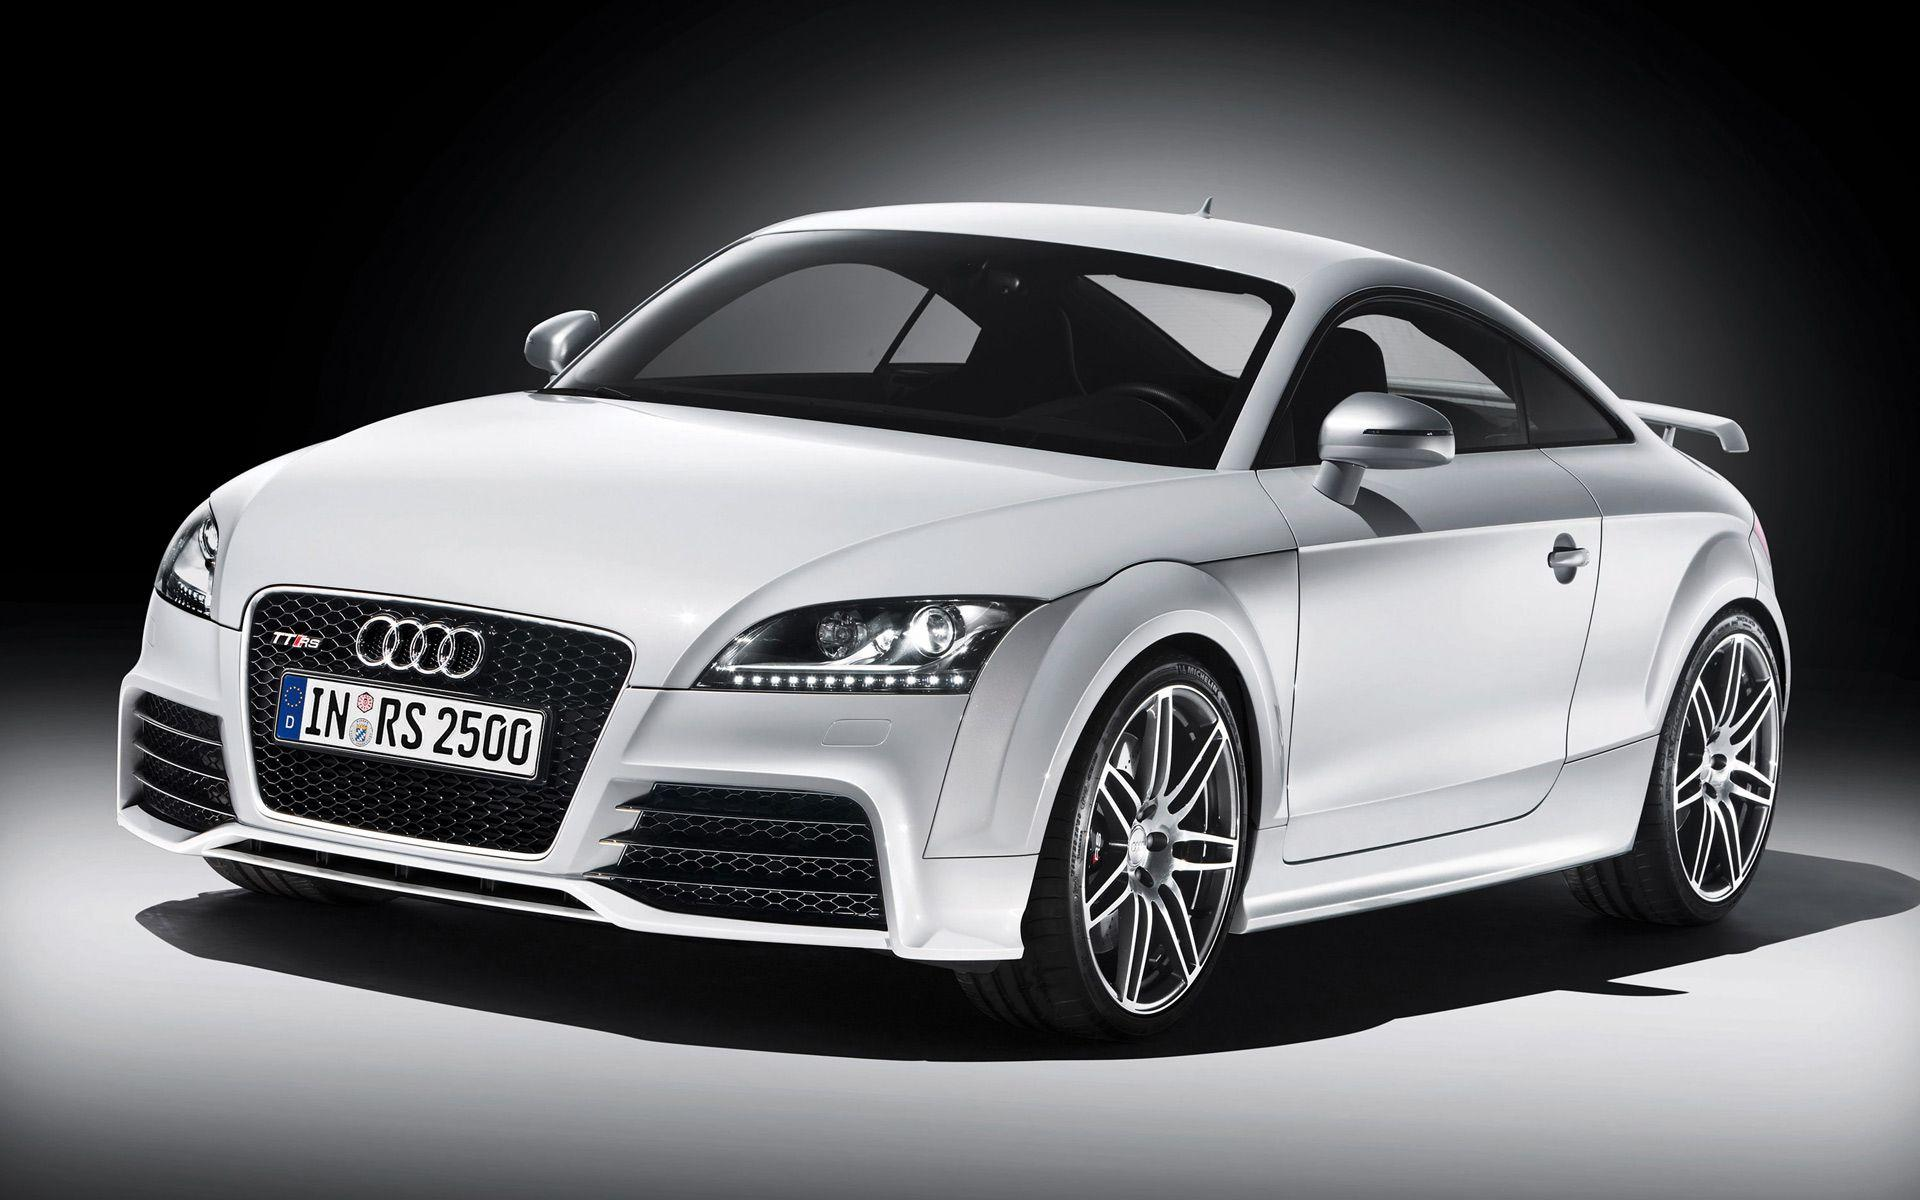 Audi Tt Rs Photos and Wallpapers | TrueAutoSite